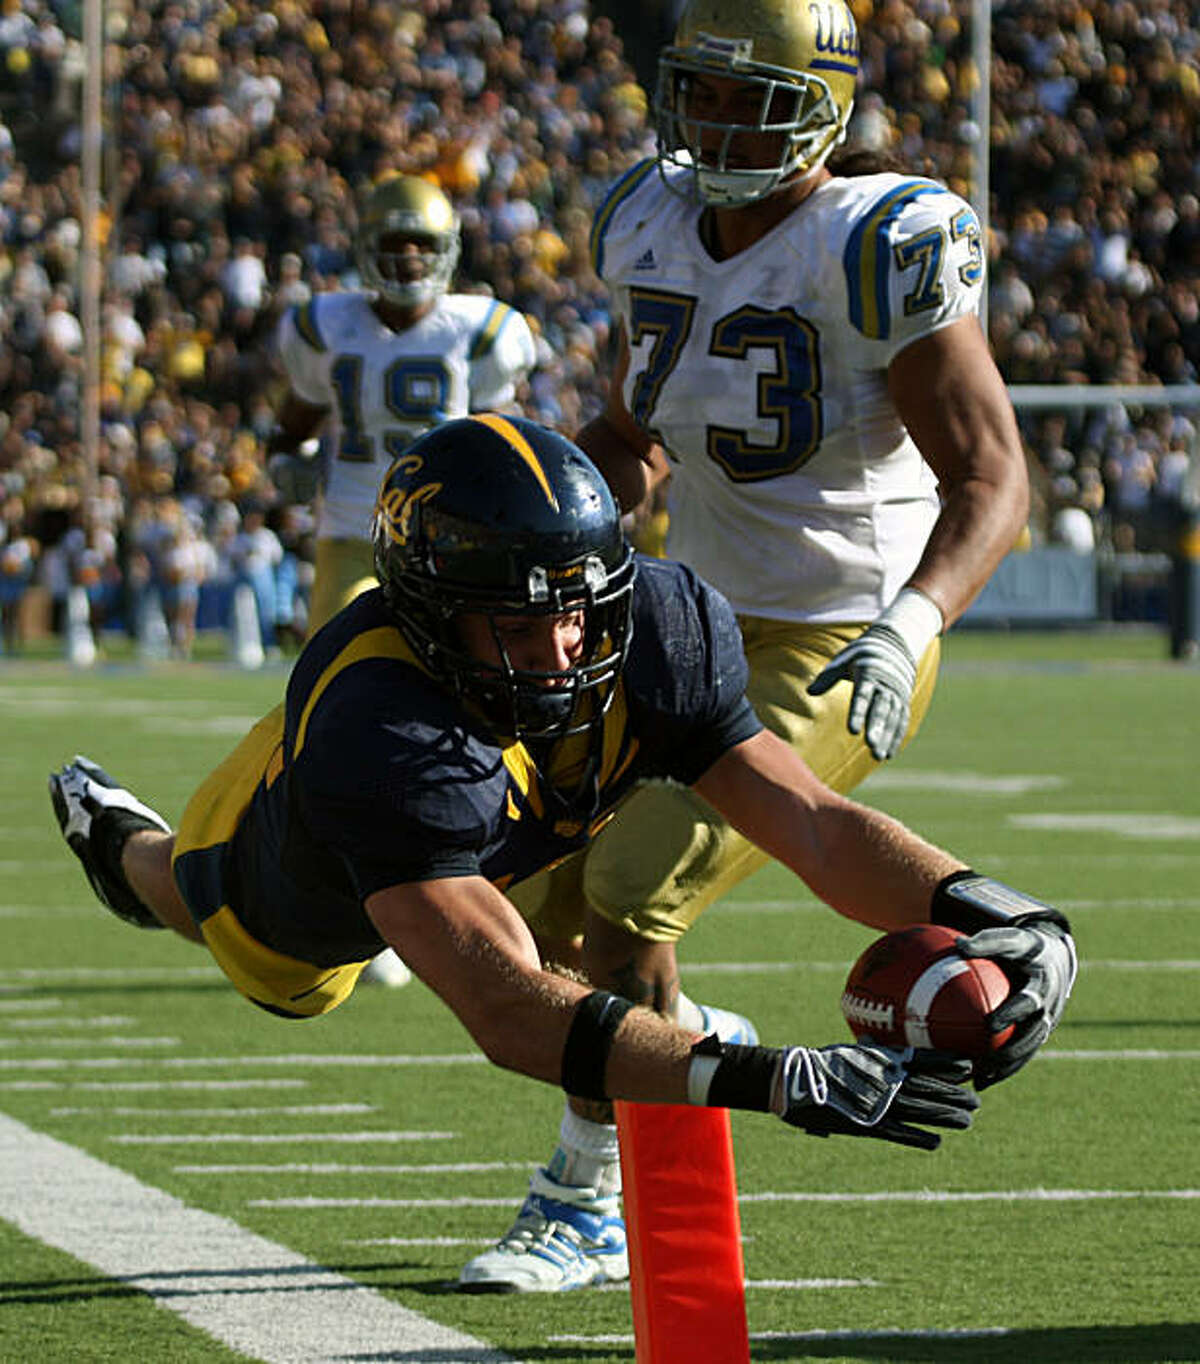 Cal linebacker Michael Mohamed dives into the end zone after intercepting a UCLA pass from Kevin Craft in the 4th quarter of the Bears 41-20 victory over UCLA in Berkeley, Calif., on Saturday, October 25, 2008.